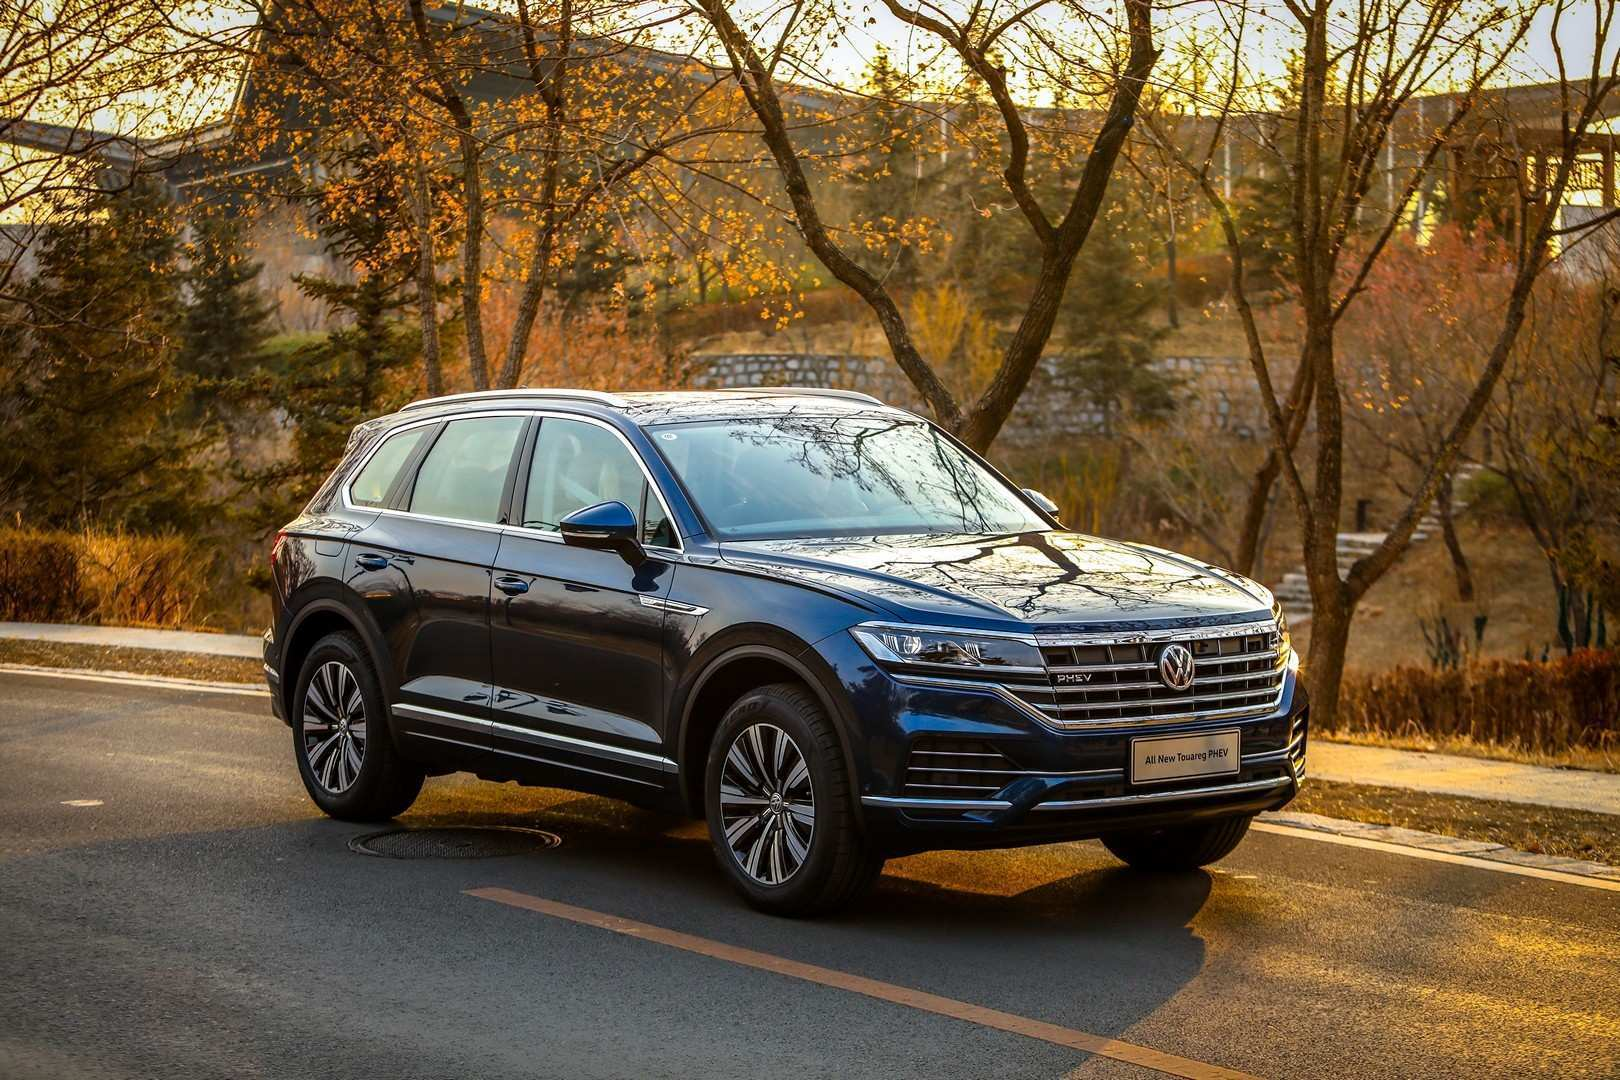 49 New 2019 Vw Touareg Tdi New Concept